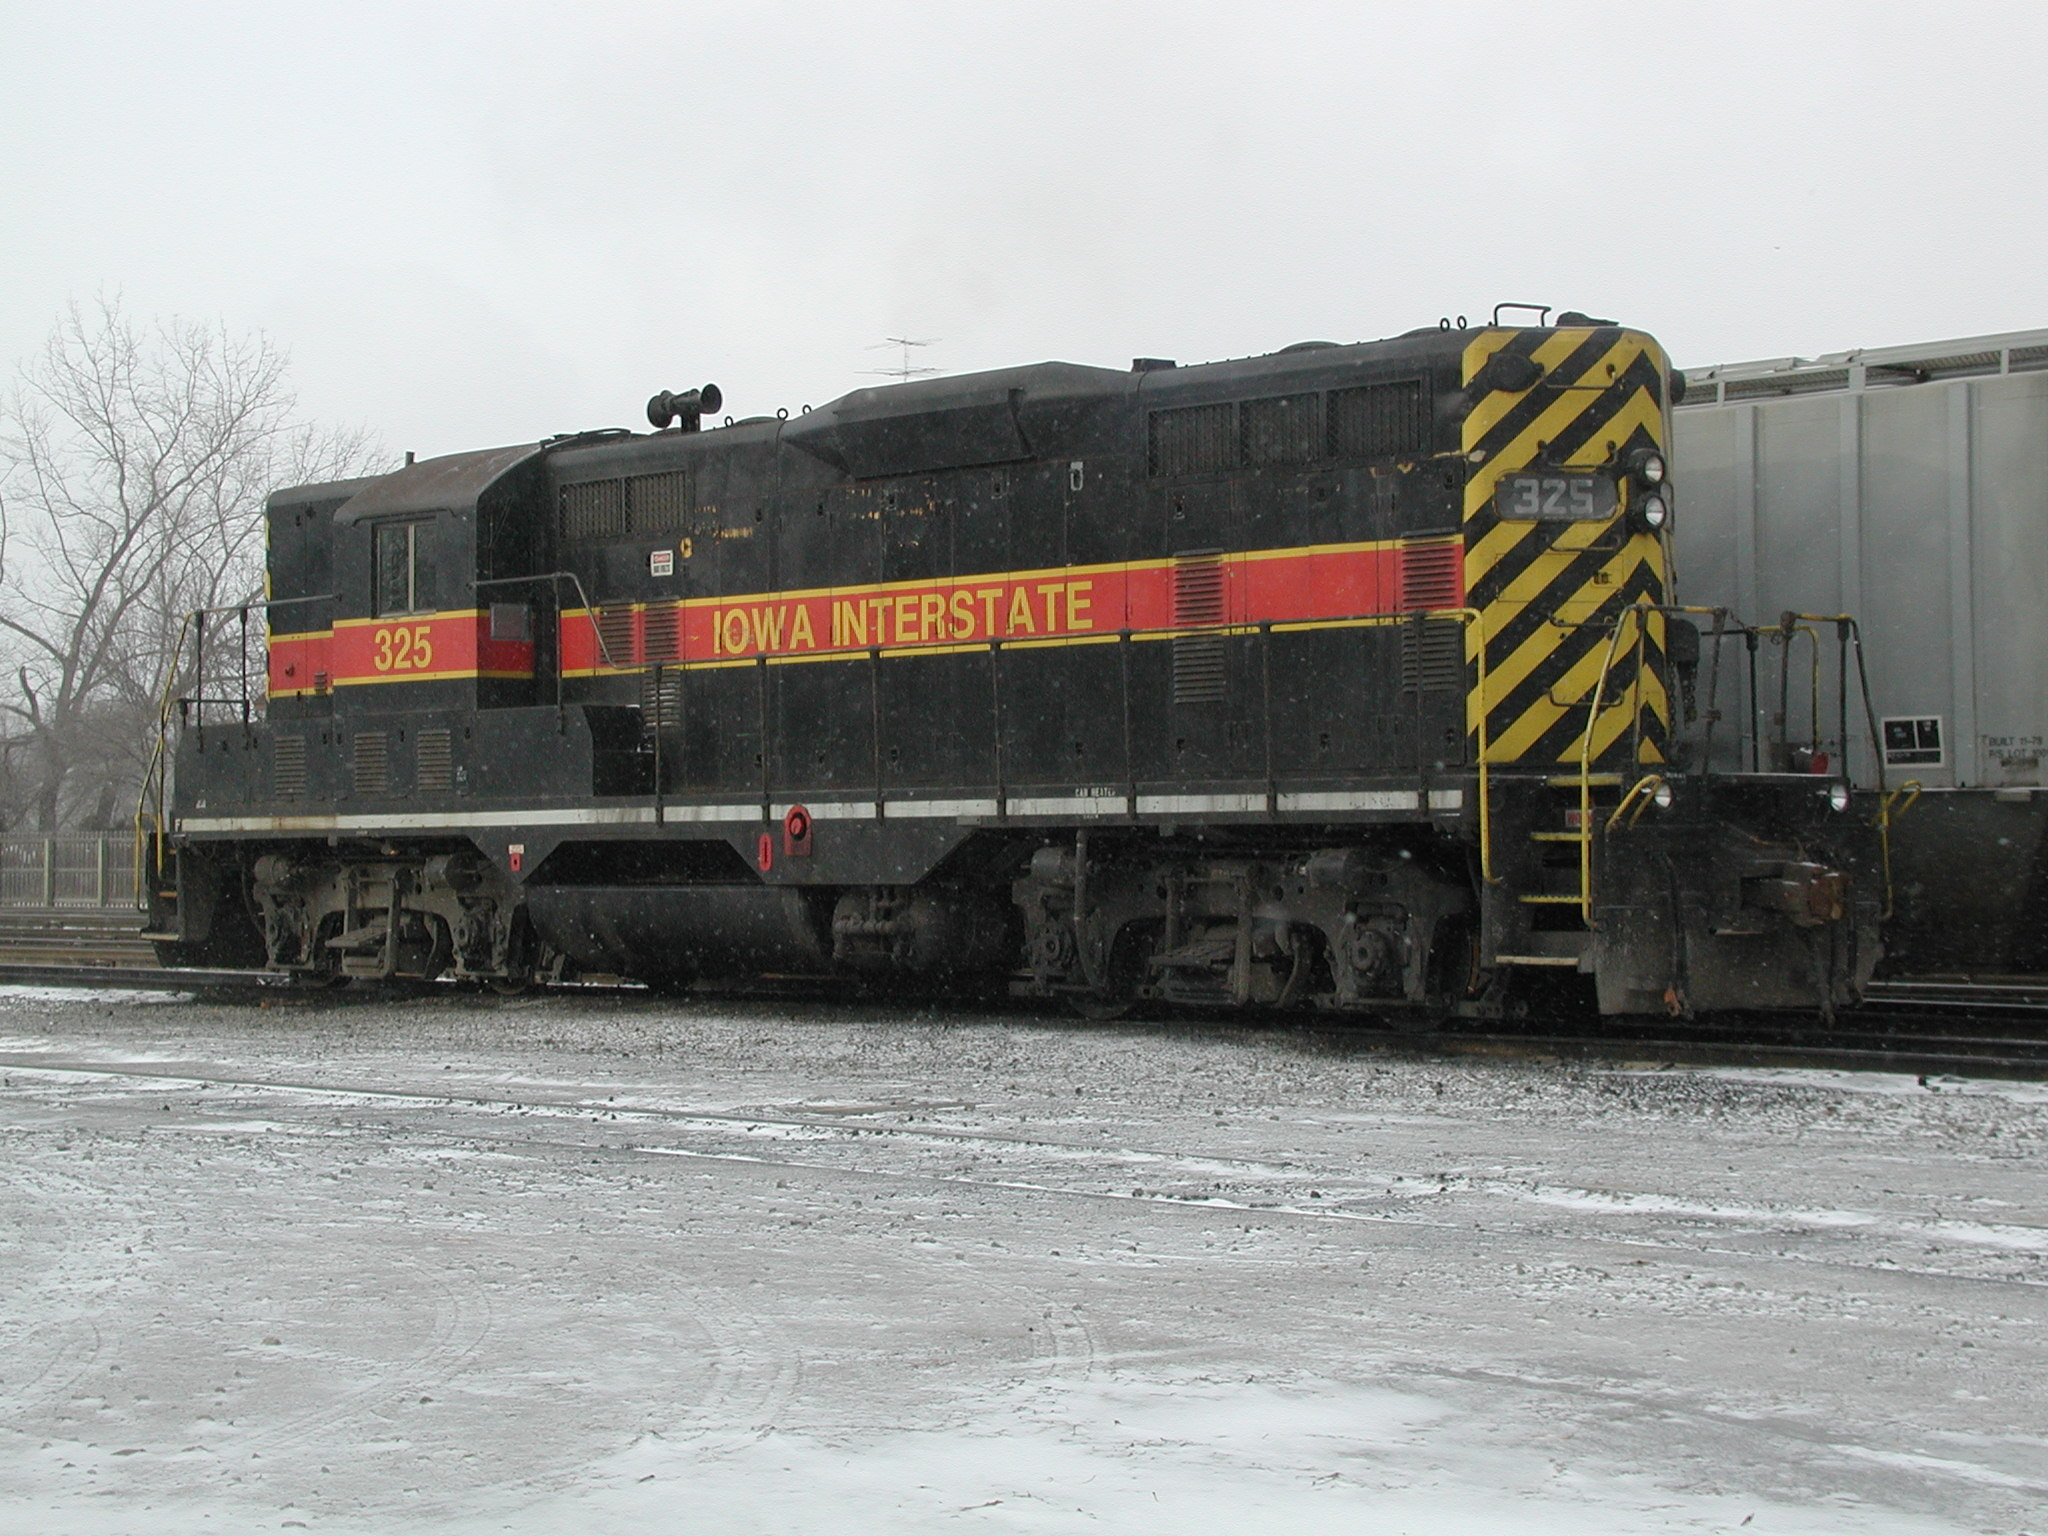 IAIS 325 at Iowa City, IA on 23-Dec-2001